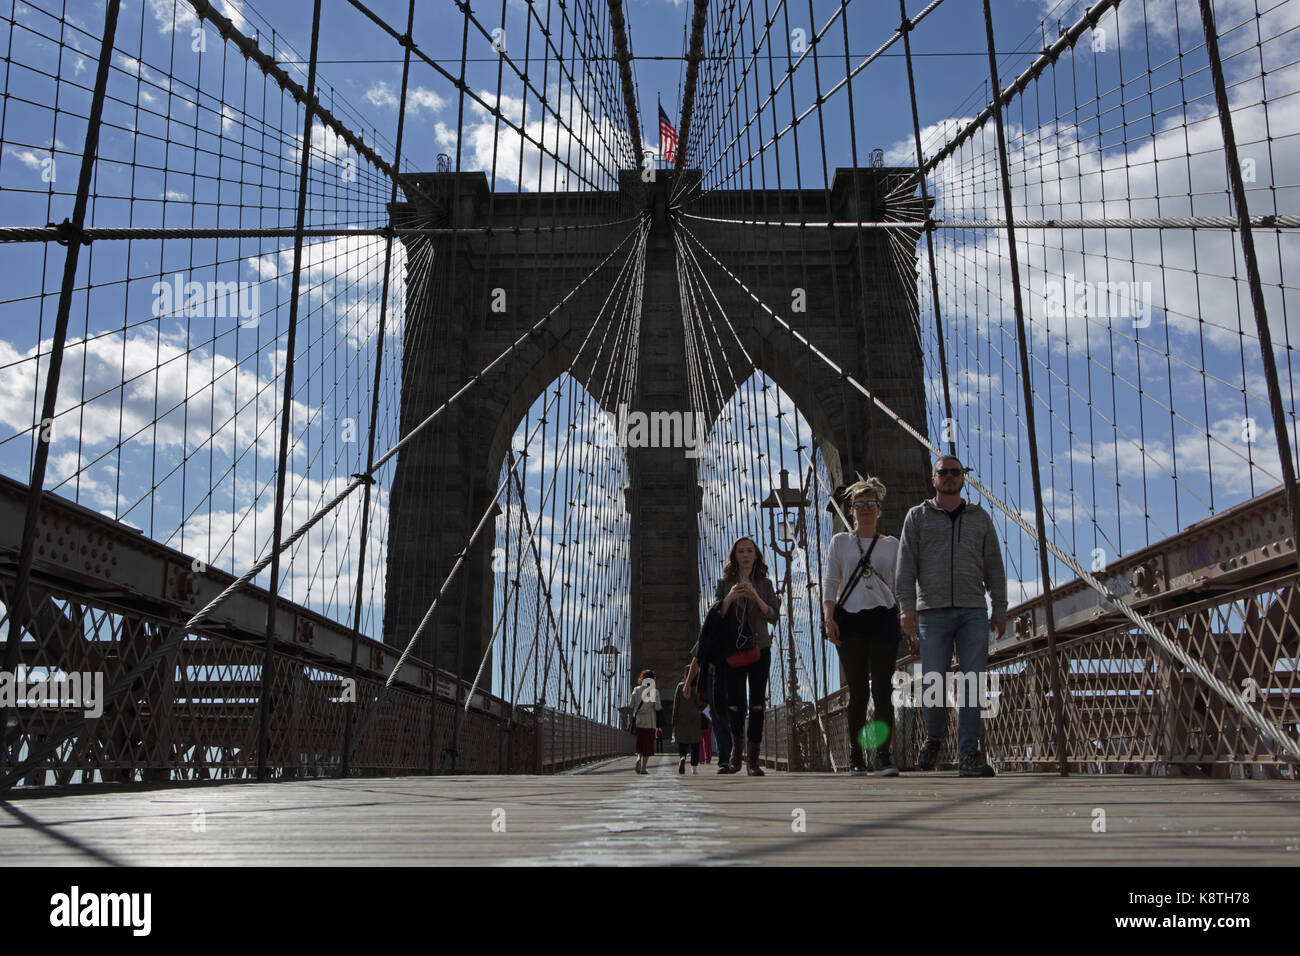 New York, NY, USA - May 3, 2017: Worms eye view of people walking to Manhattan across the Brooklyn Bridge on a sunny - Stock Image